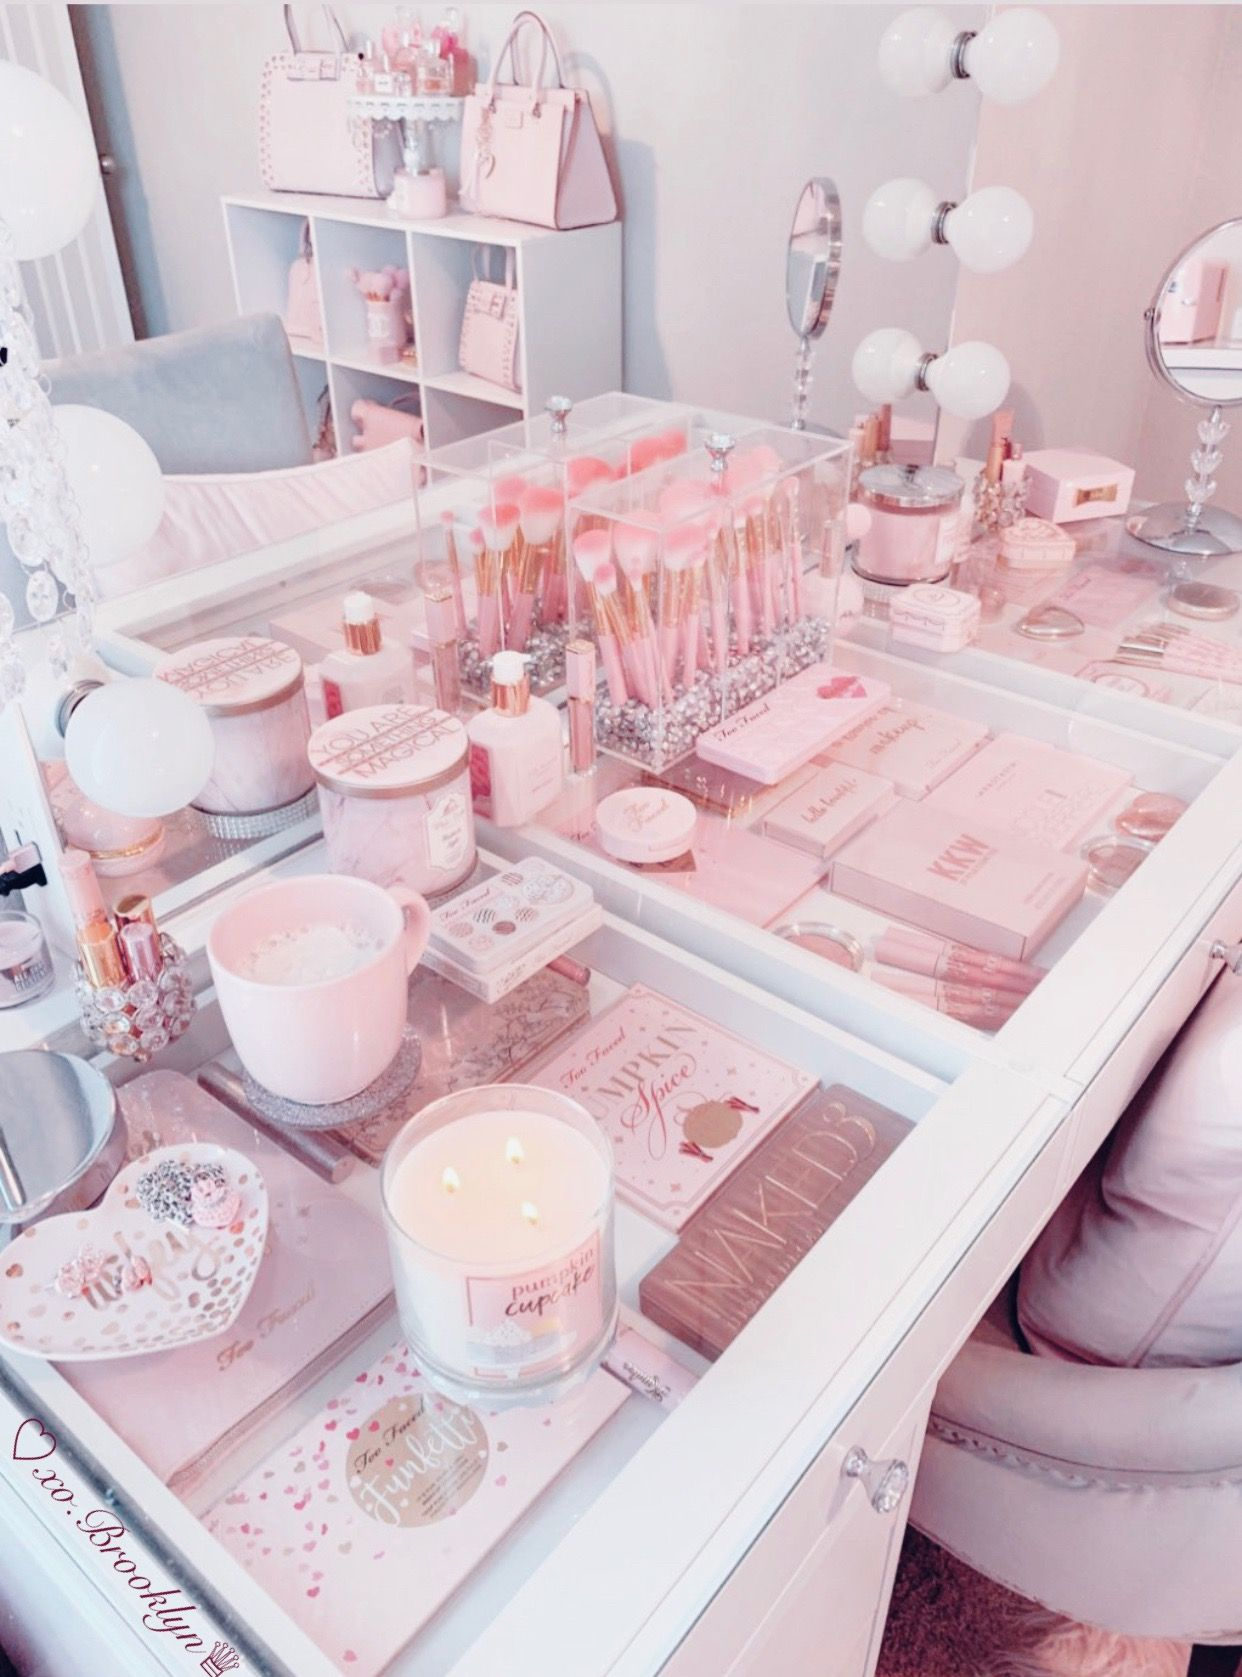 We're spotlighting 21 pink and gray bedrooms that will make you want to design your room around the versatile and chic color combination. Cute Pink Bedroom Aesthetic Besthomish